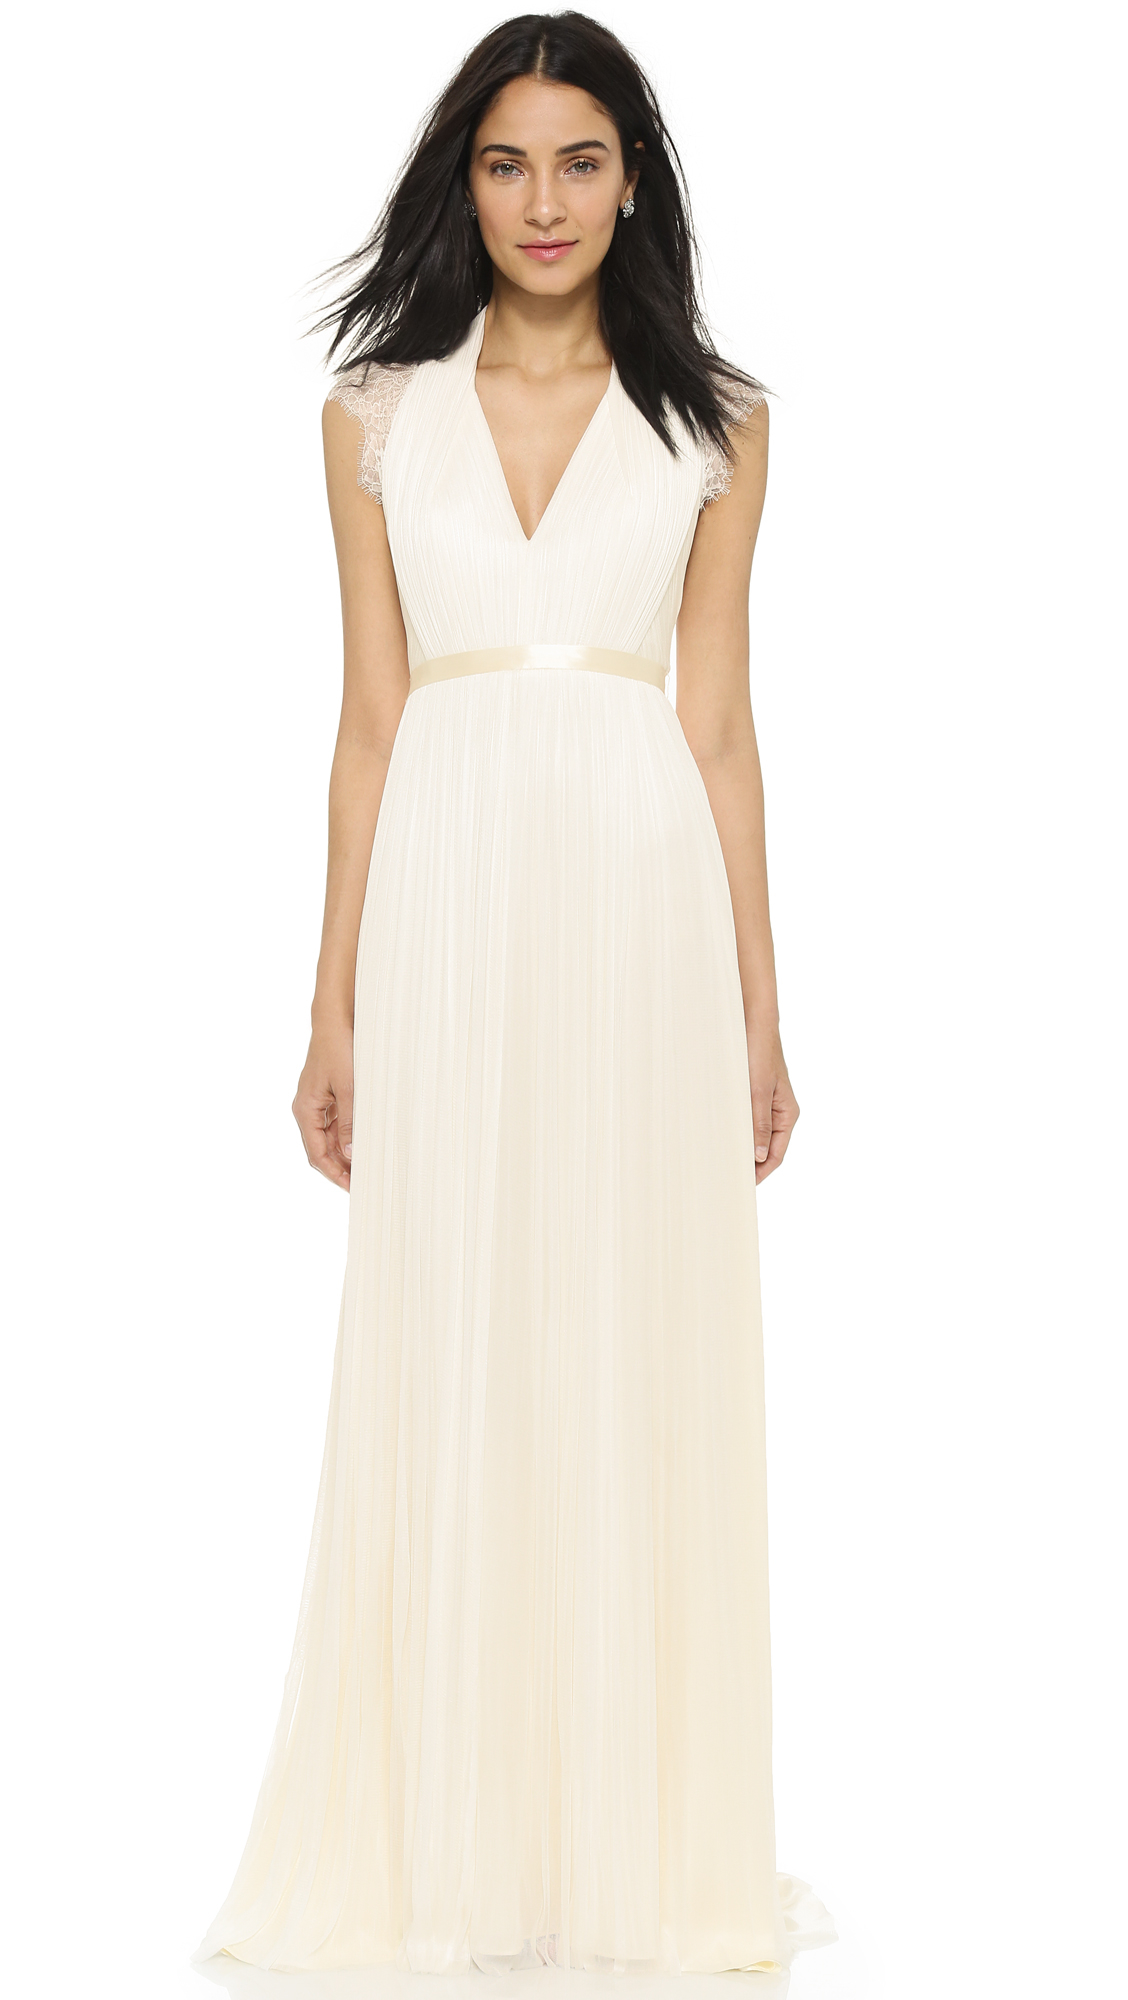 Lyst - Catherine Deane Laverne Gown - Oyster in Natural